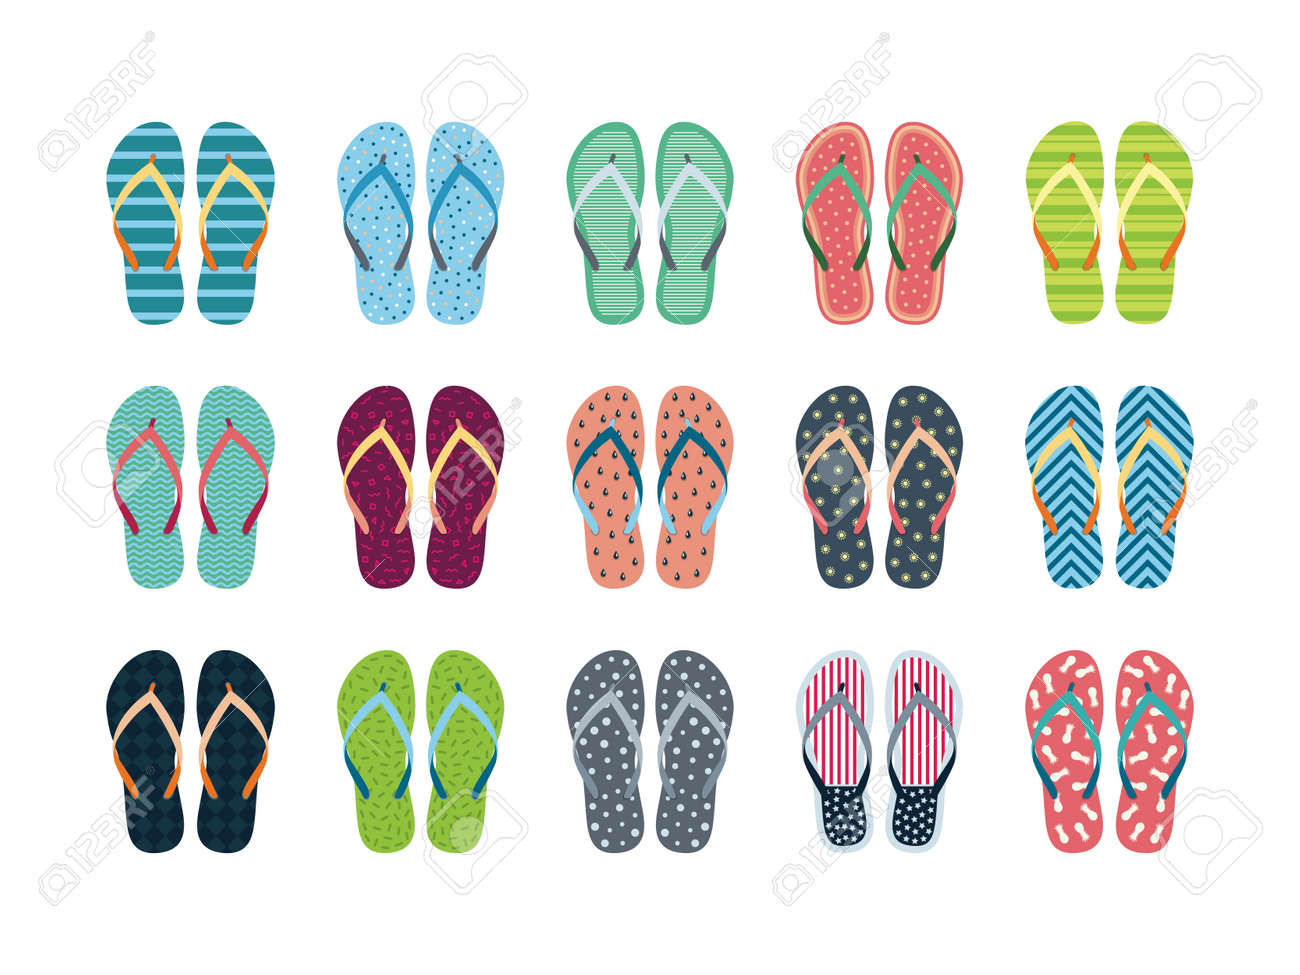 3f9a239223df7 Summer flip flops set isolated on white background. Flip flops with  different designs drawn in